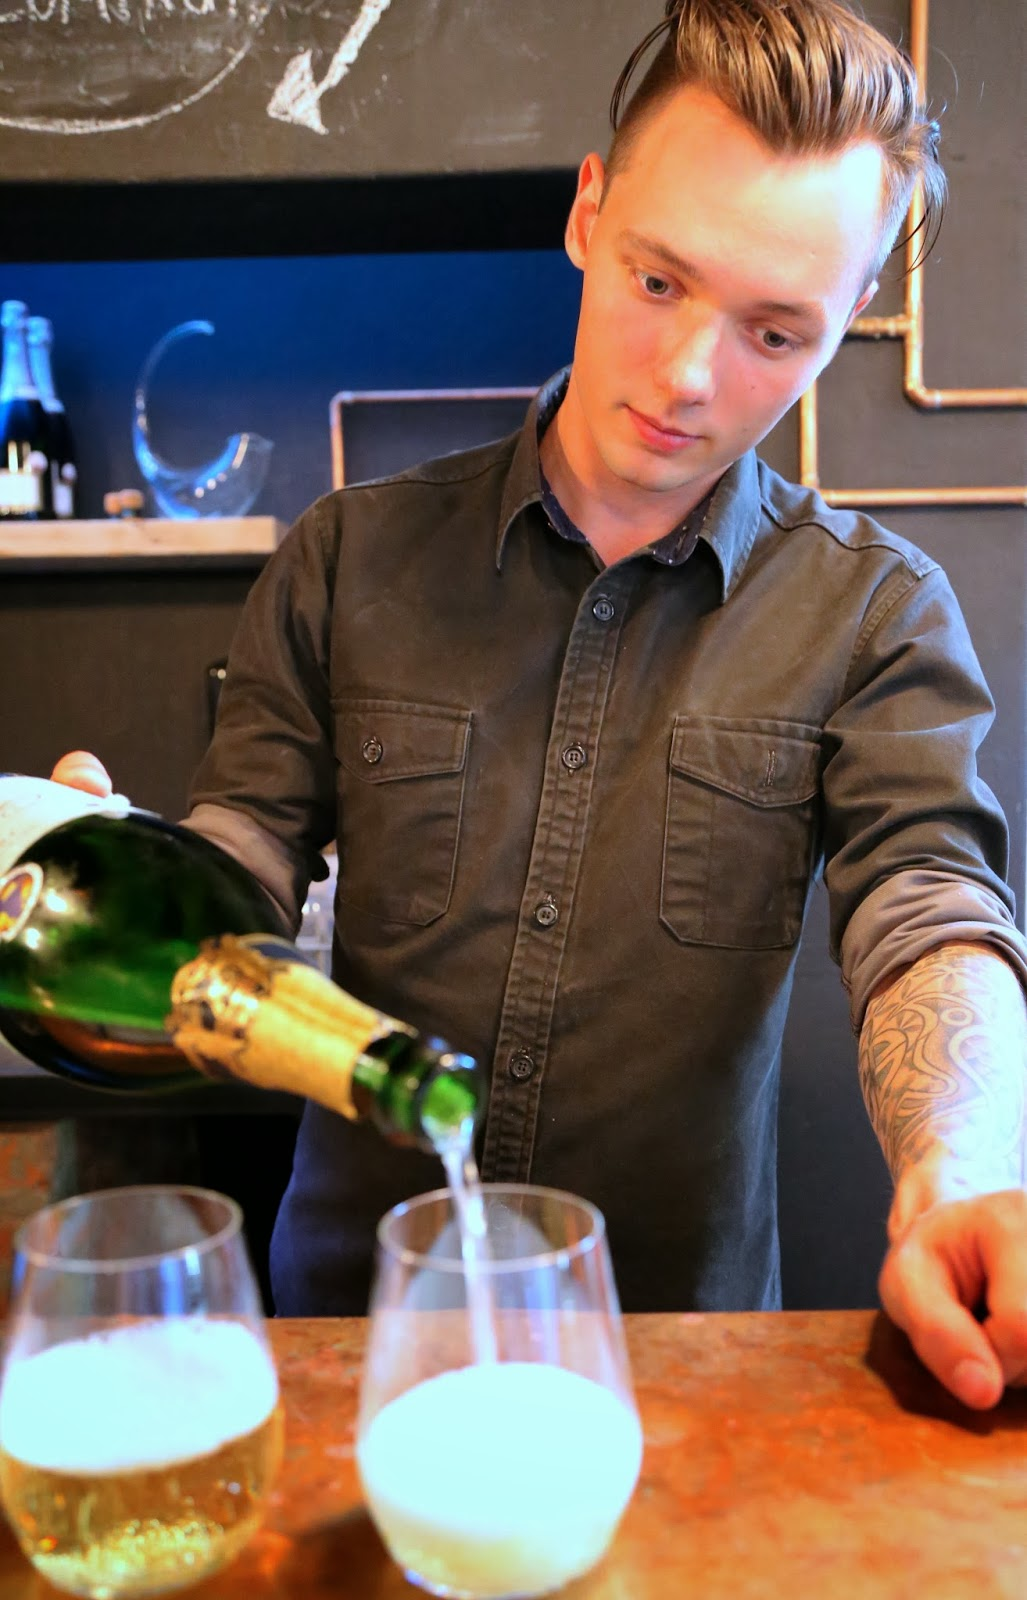 Pouring sparkling wine at Publik, Cape Town.